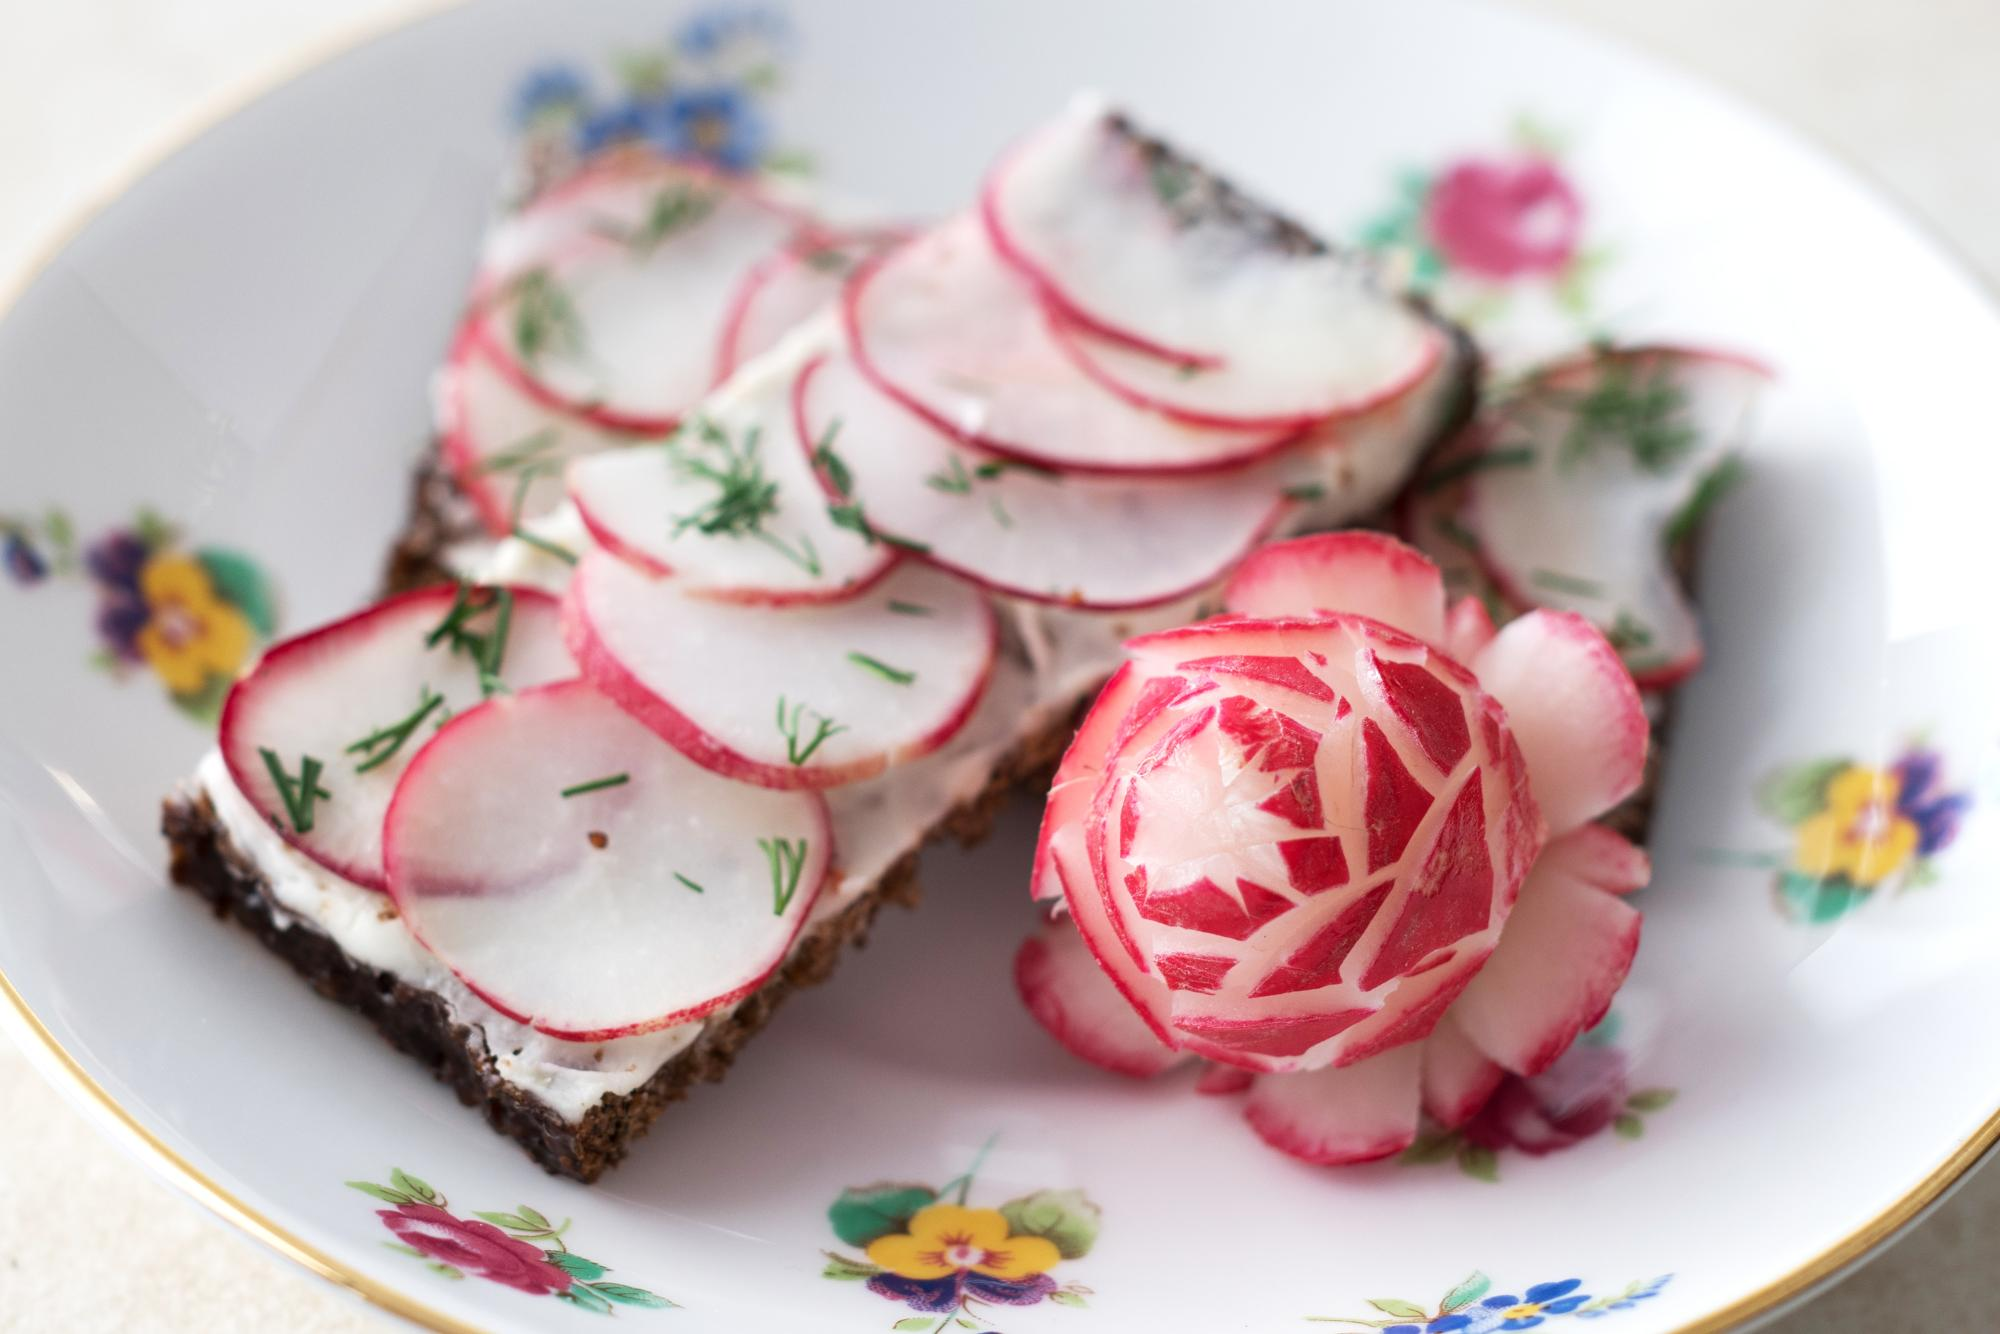 This is a picture of a radish rose.